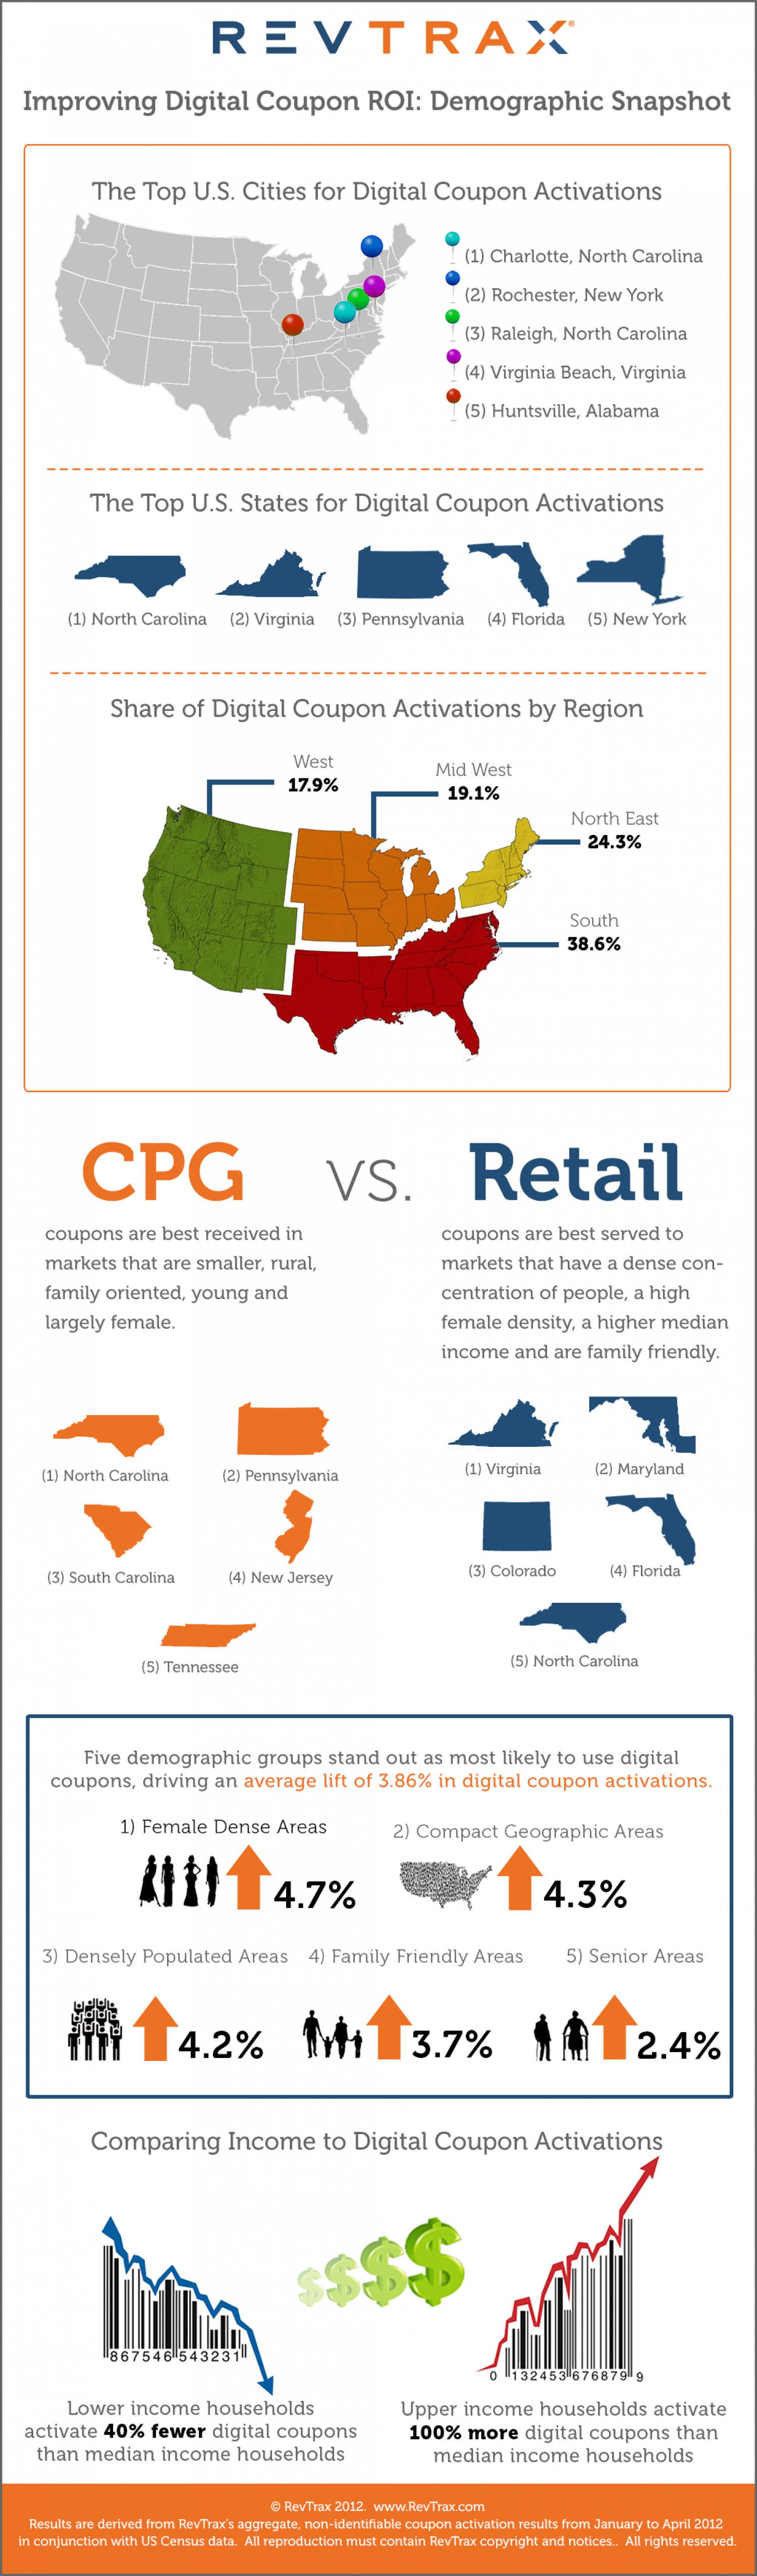 Improving Digital Coupon ROI: Demographic Snapshot Infographic